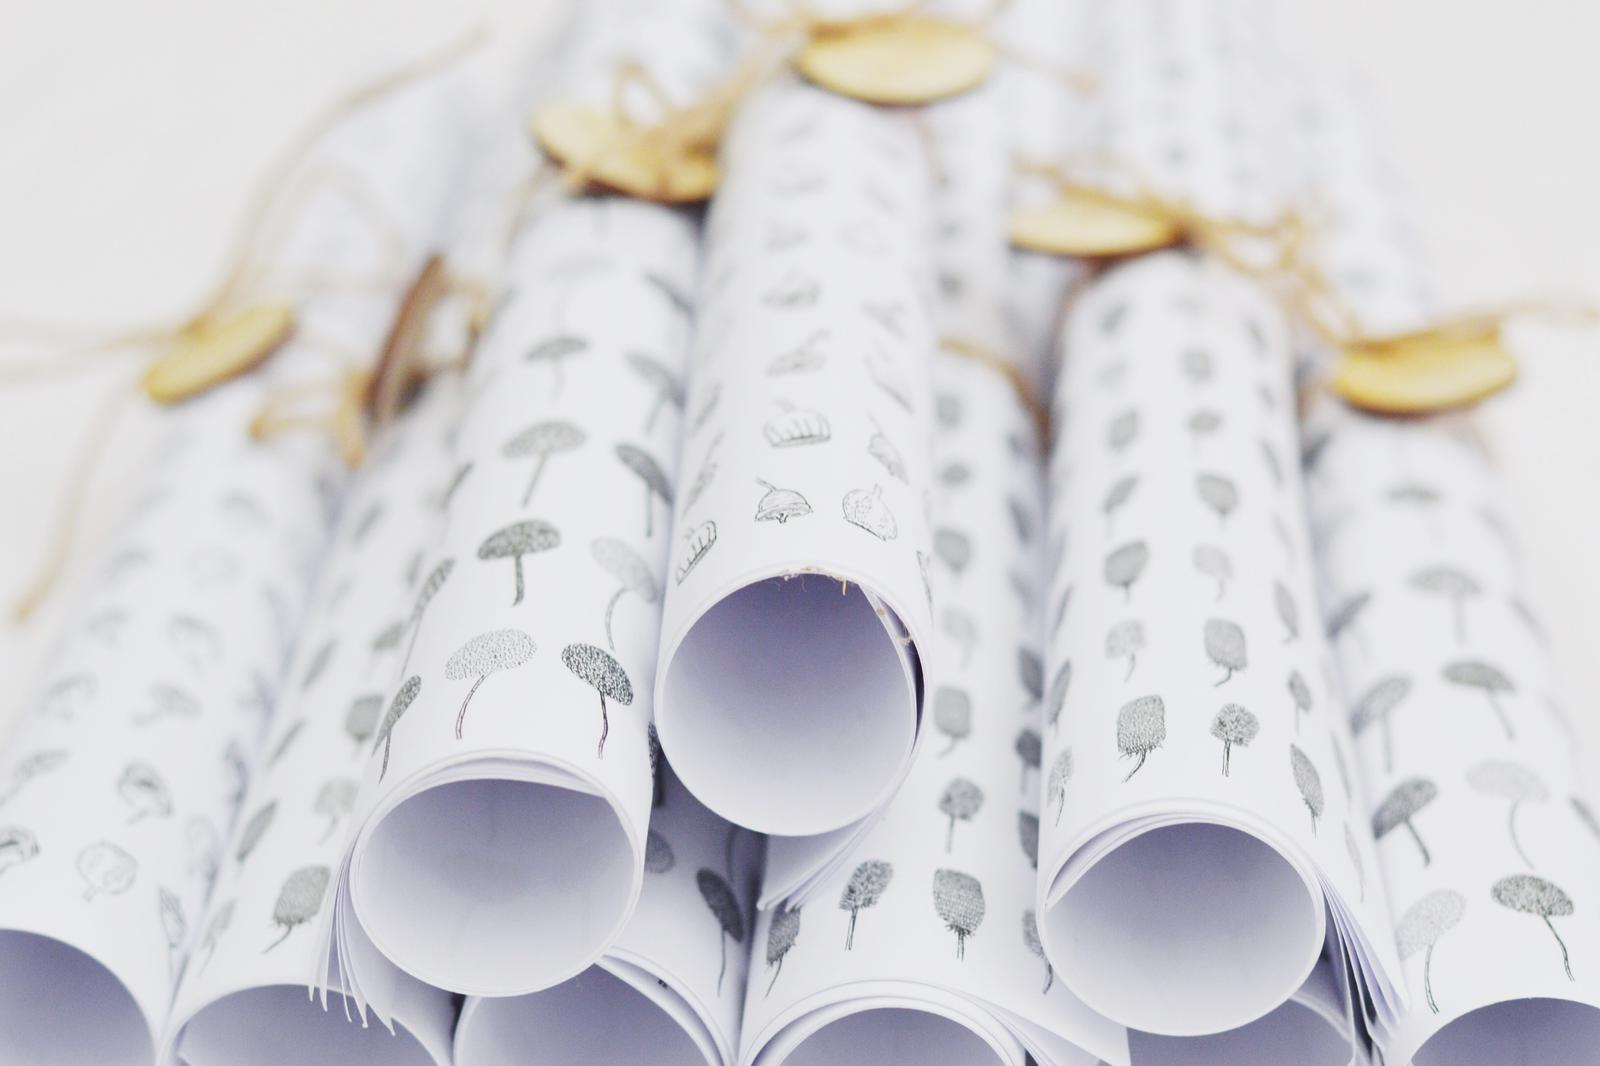 sca.har. wrapping paper